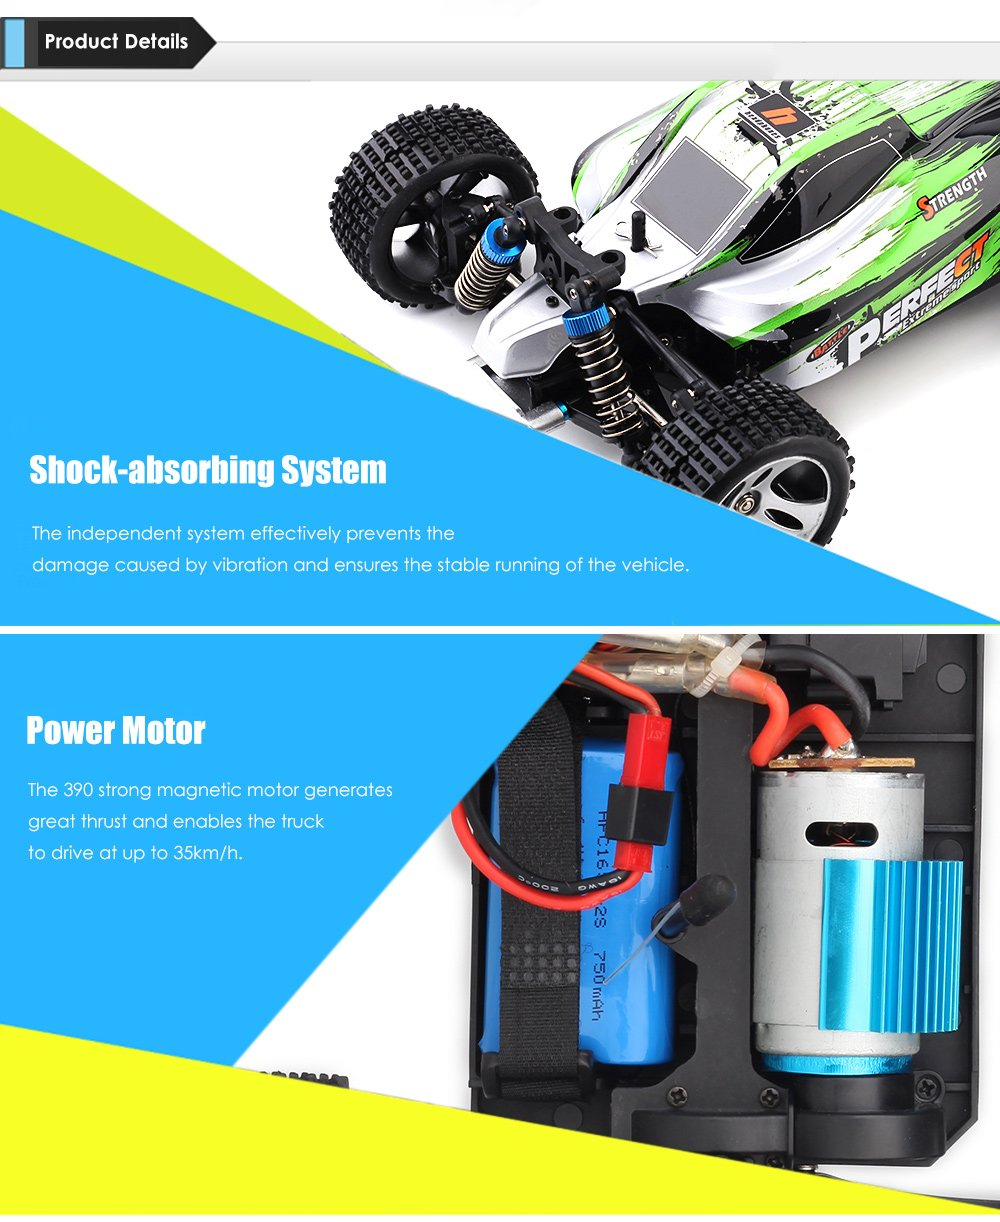 Coche rc buggy 1/18 RTR 2,4Ghz Storm 35km/h WLToys referencia A959-A A959-A